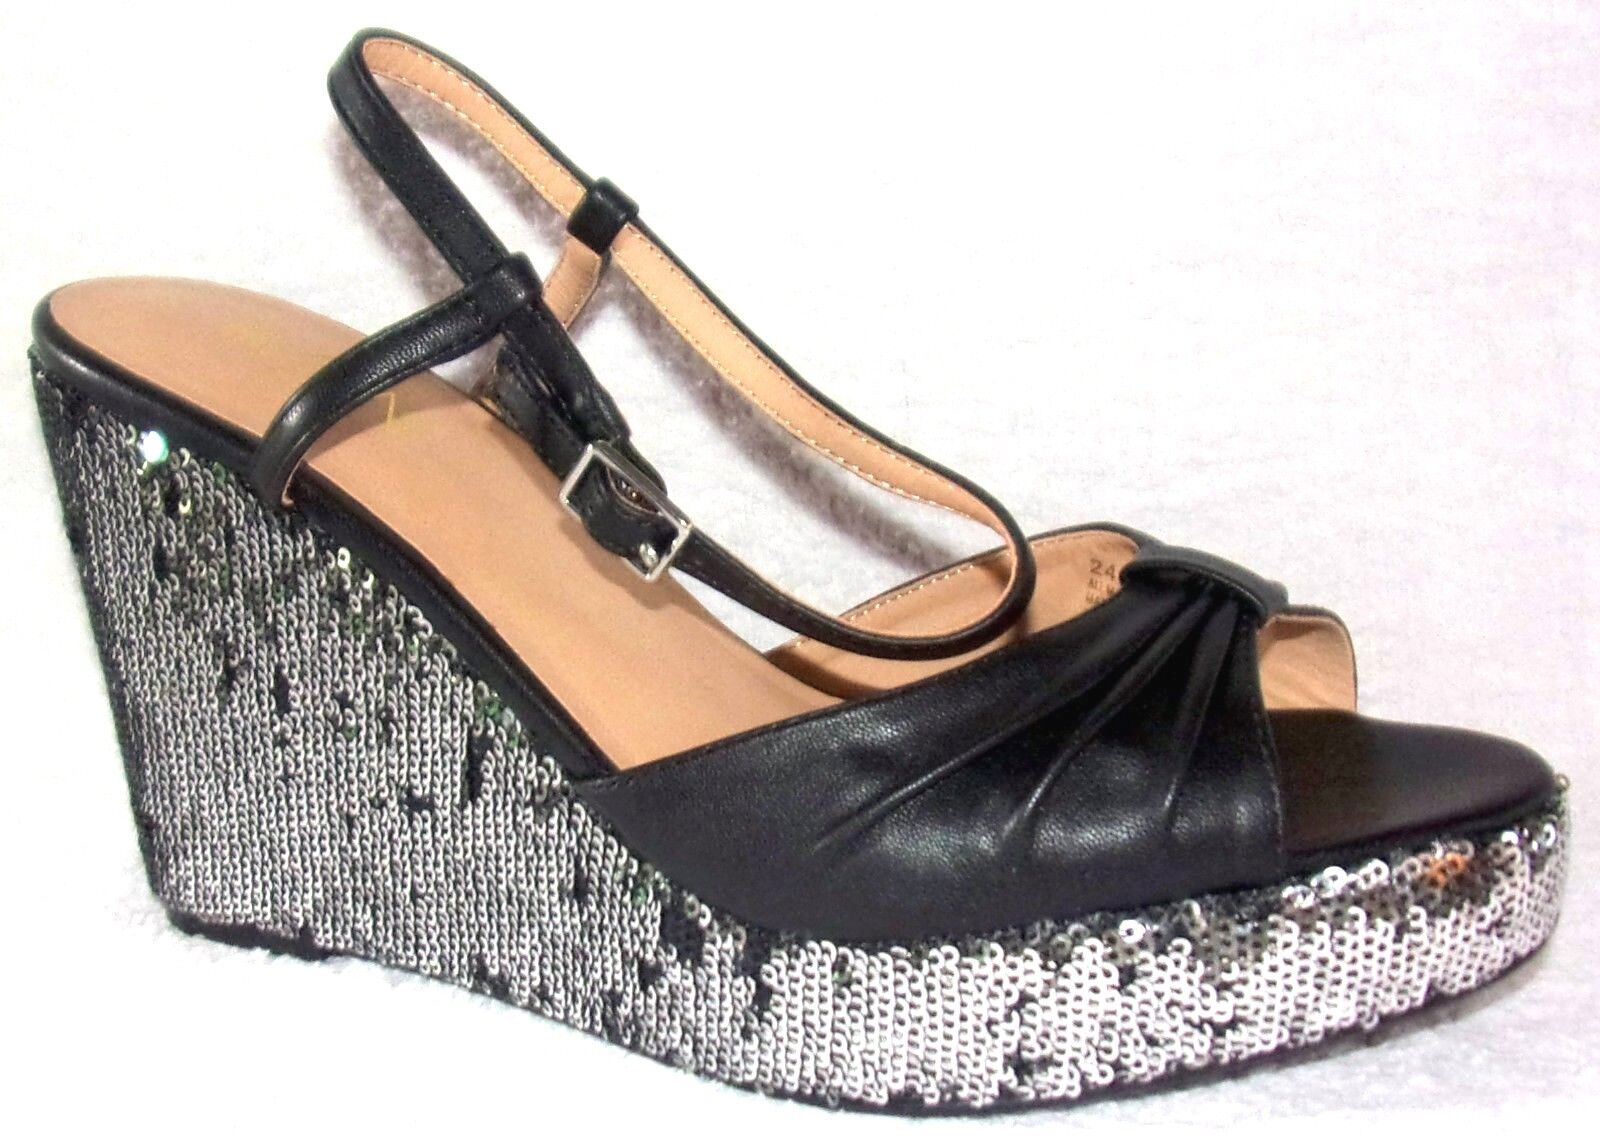 New IMAN the Global Chic Glam to the IMAN Max Black Comfort WedgePlatform Sandals 9 M 987460